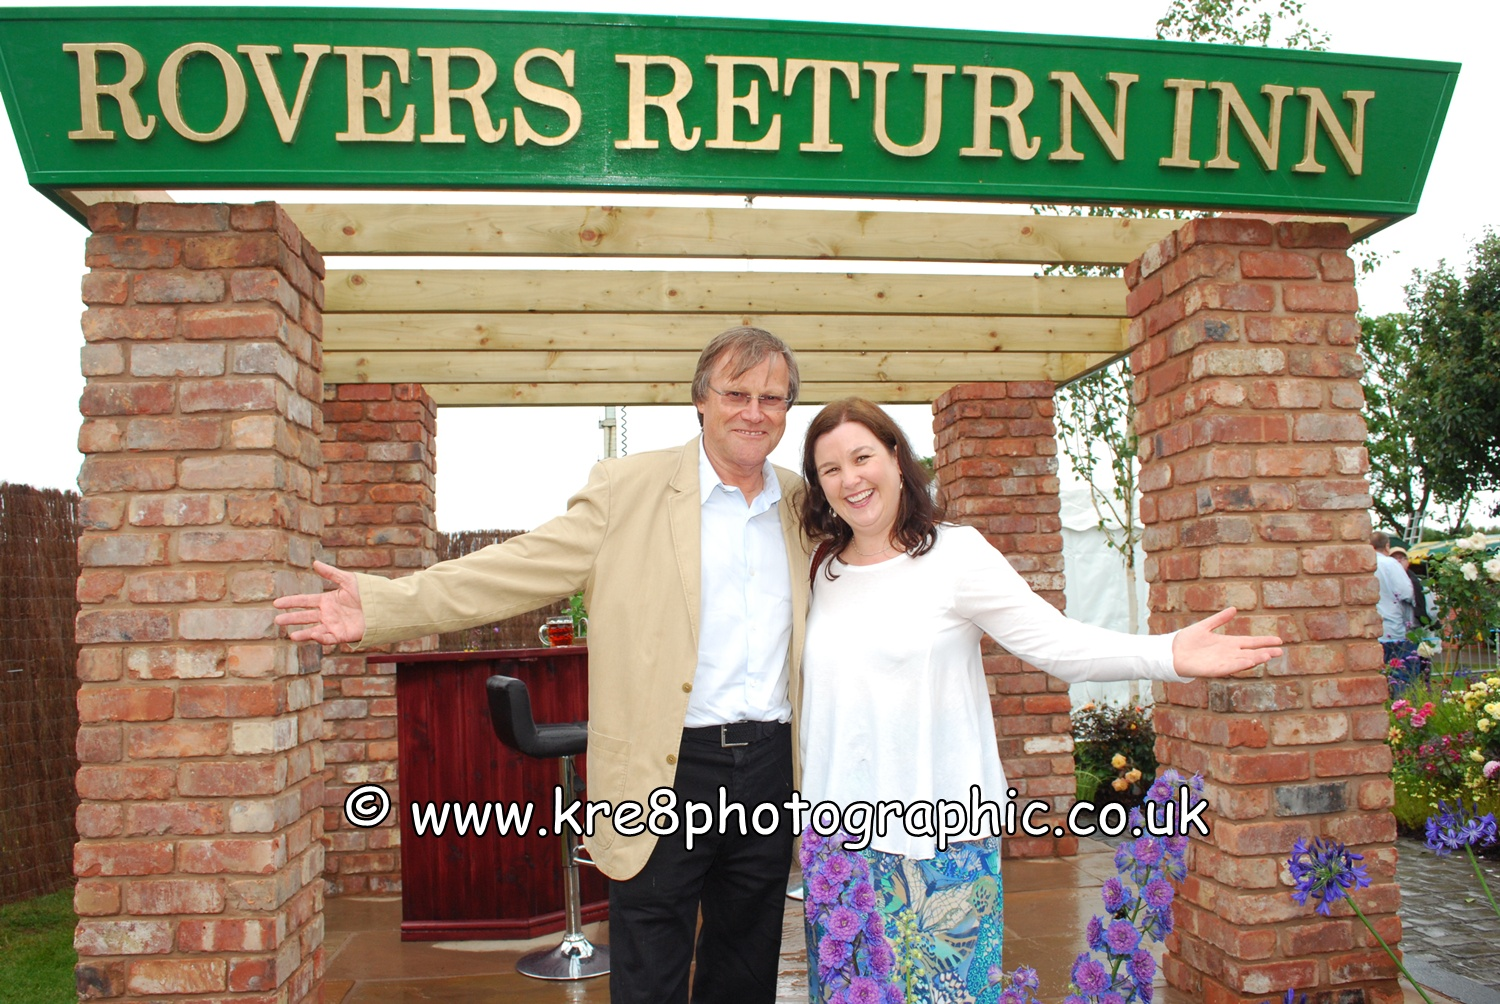 David Neilson & Patti Clare, Roy & Mary from Coronation Street. Celebrity Press Photography By www.k